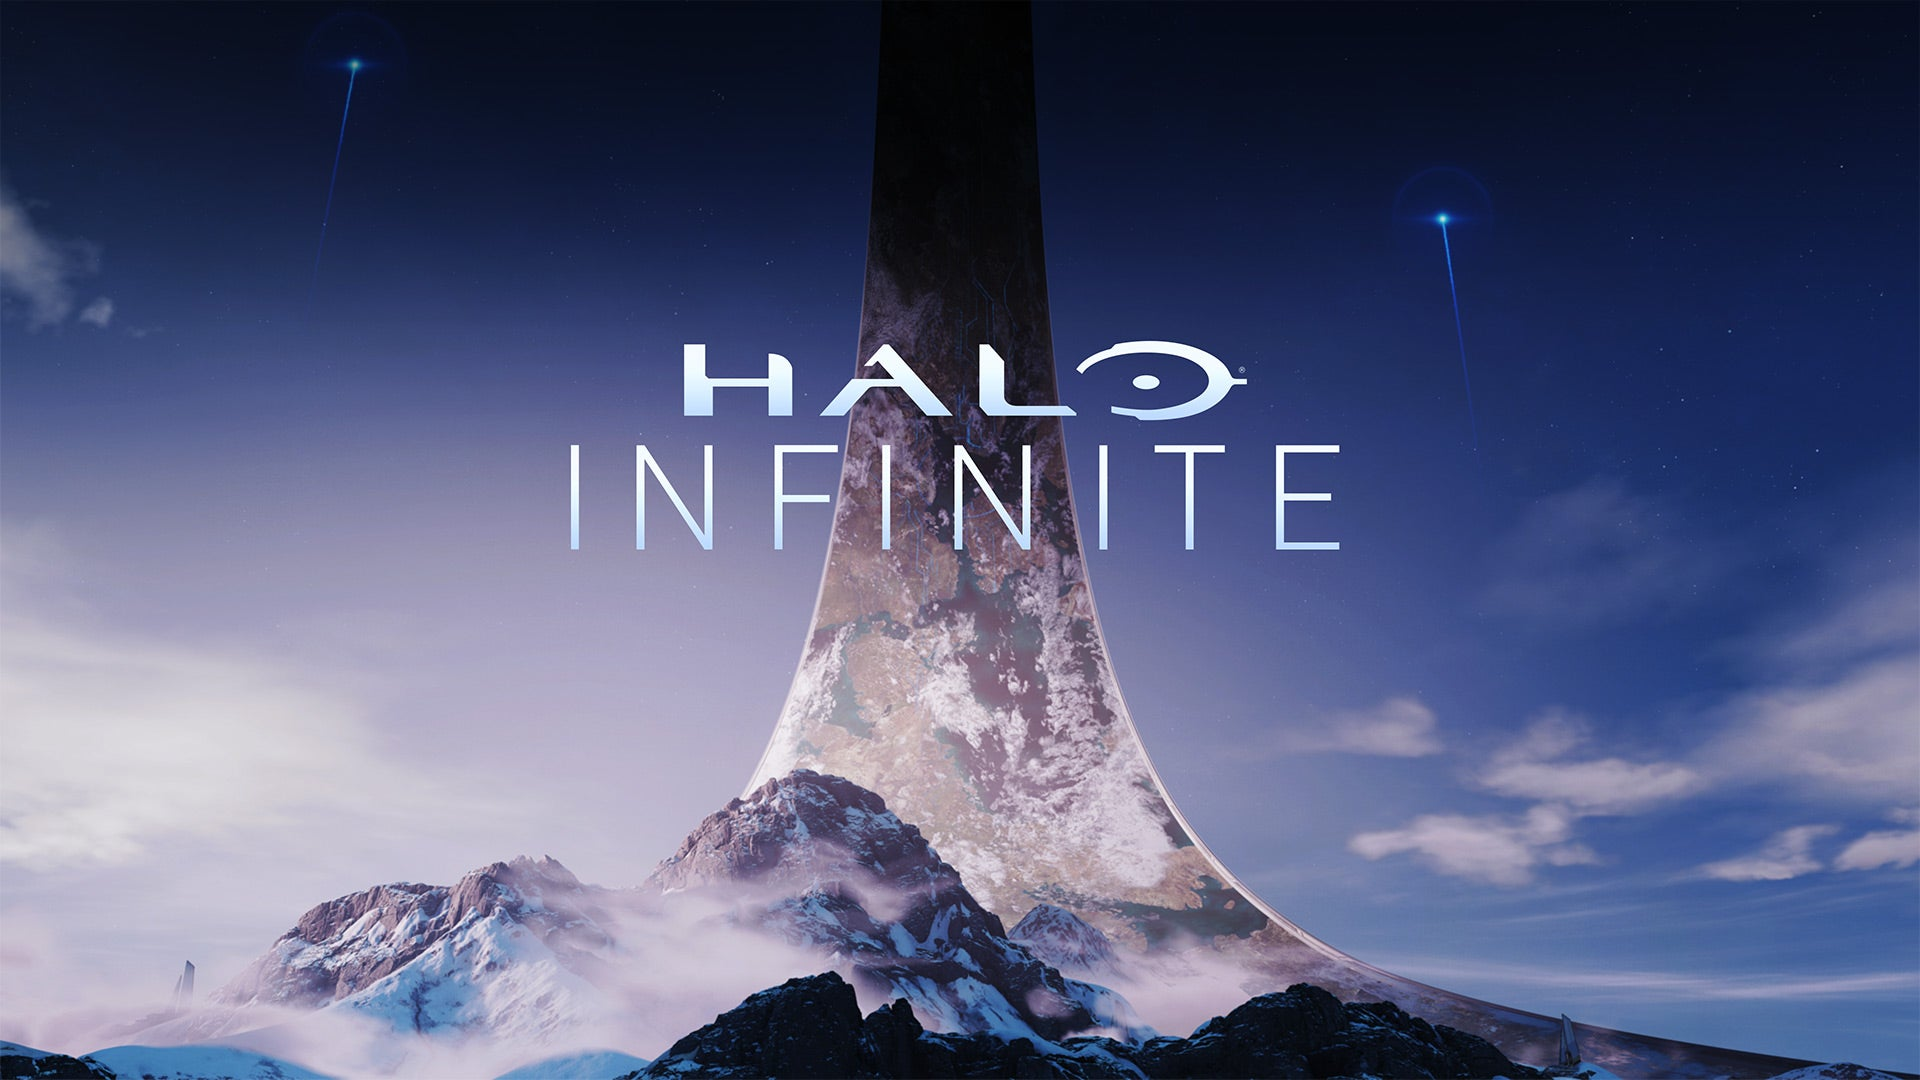 """Halo Infinite"" : CLASSIC CHIEF IS BACK!!"